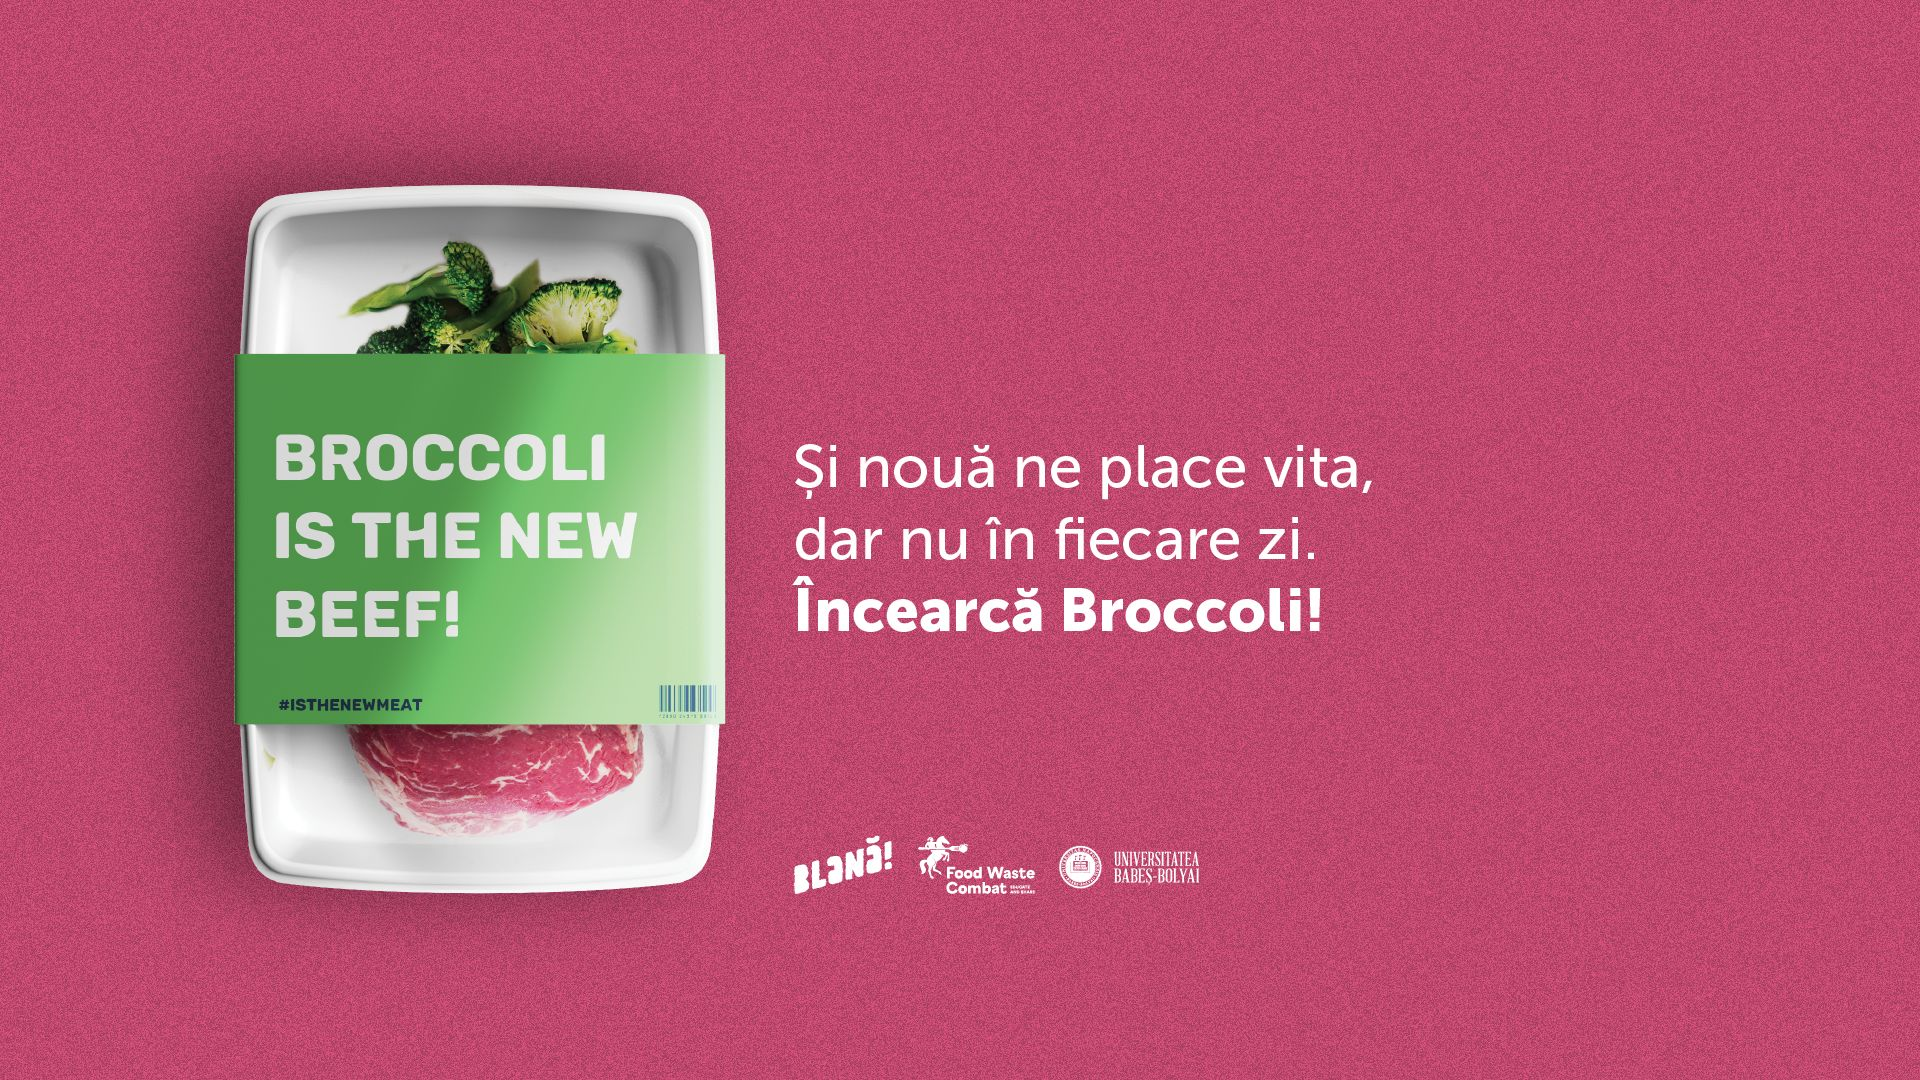 broccoli isthenewmeat